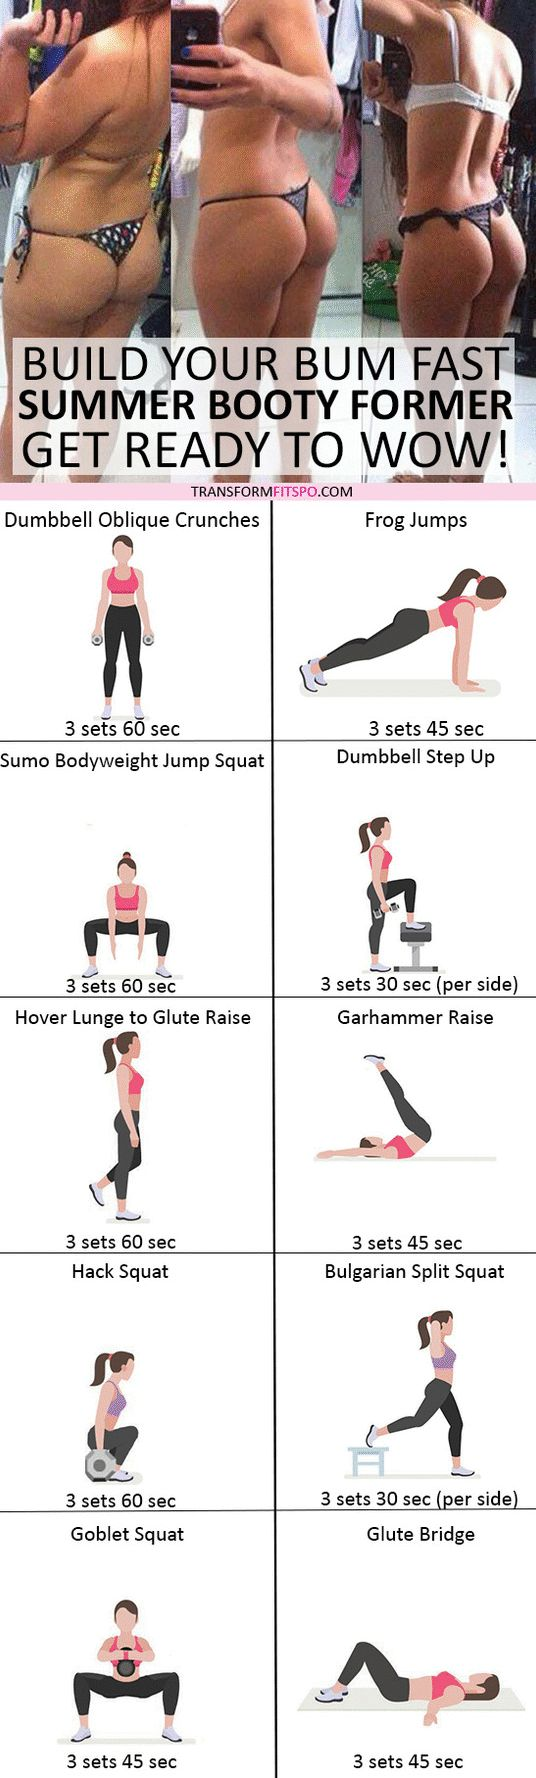 #womensworkout #workout #femalefitness Repin and share if this workout unleashed your summer booty! Click the pin for the full workout. Being overweight or clinically obese is a condition that's caused by having a high calorie intake and low energy expenditure. In order to lose weight, you can either reduce your calorie intake, or else exercise regularly and reduce your calorie intake at the same time. It's always more beneficial to exercise as well. Many people don't exercise...